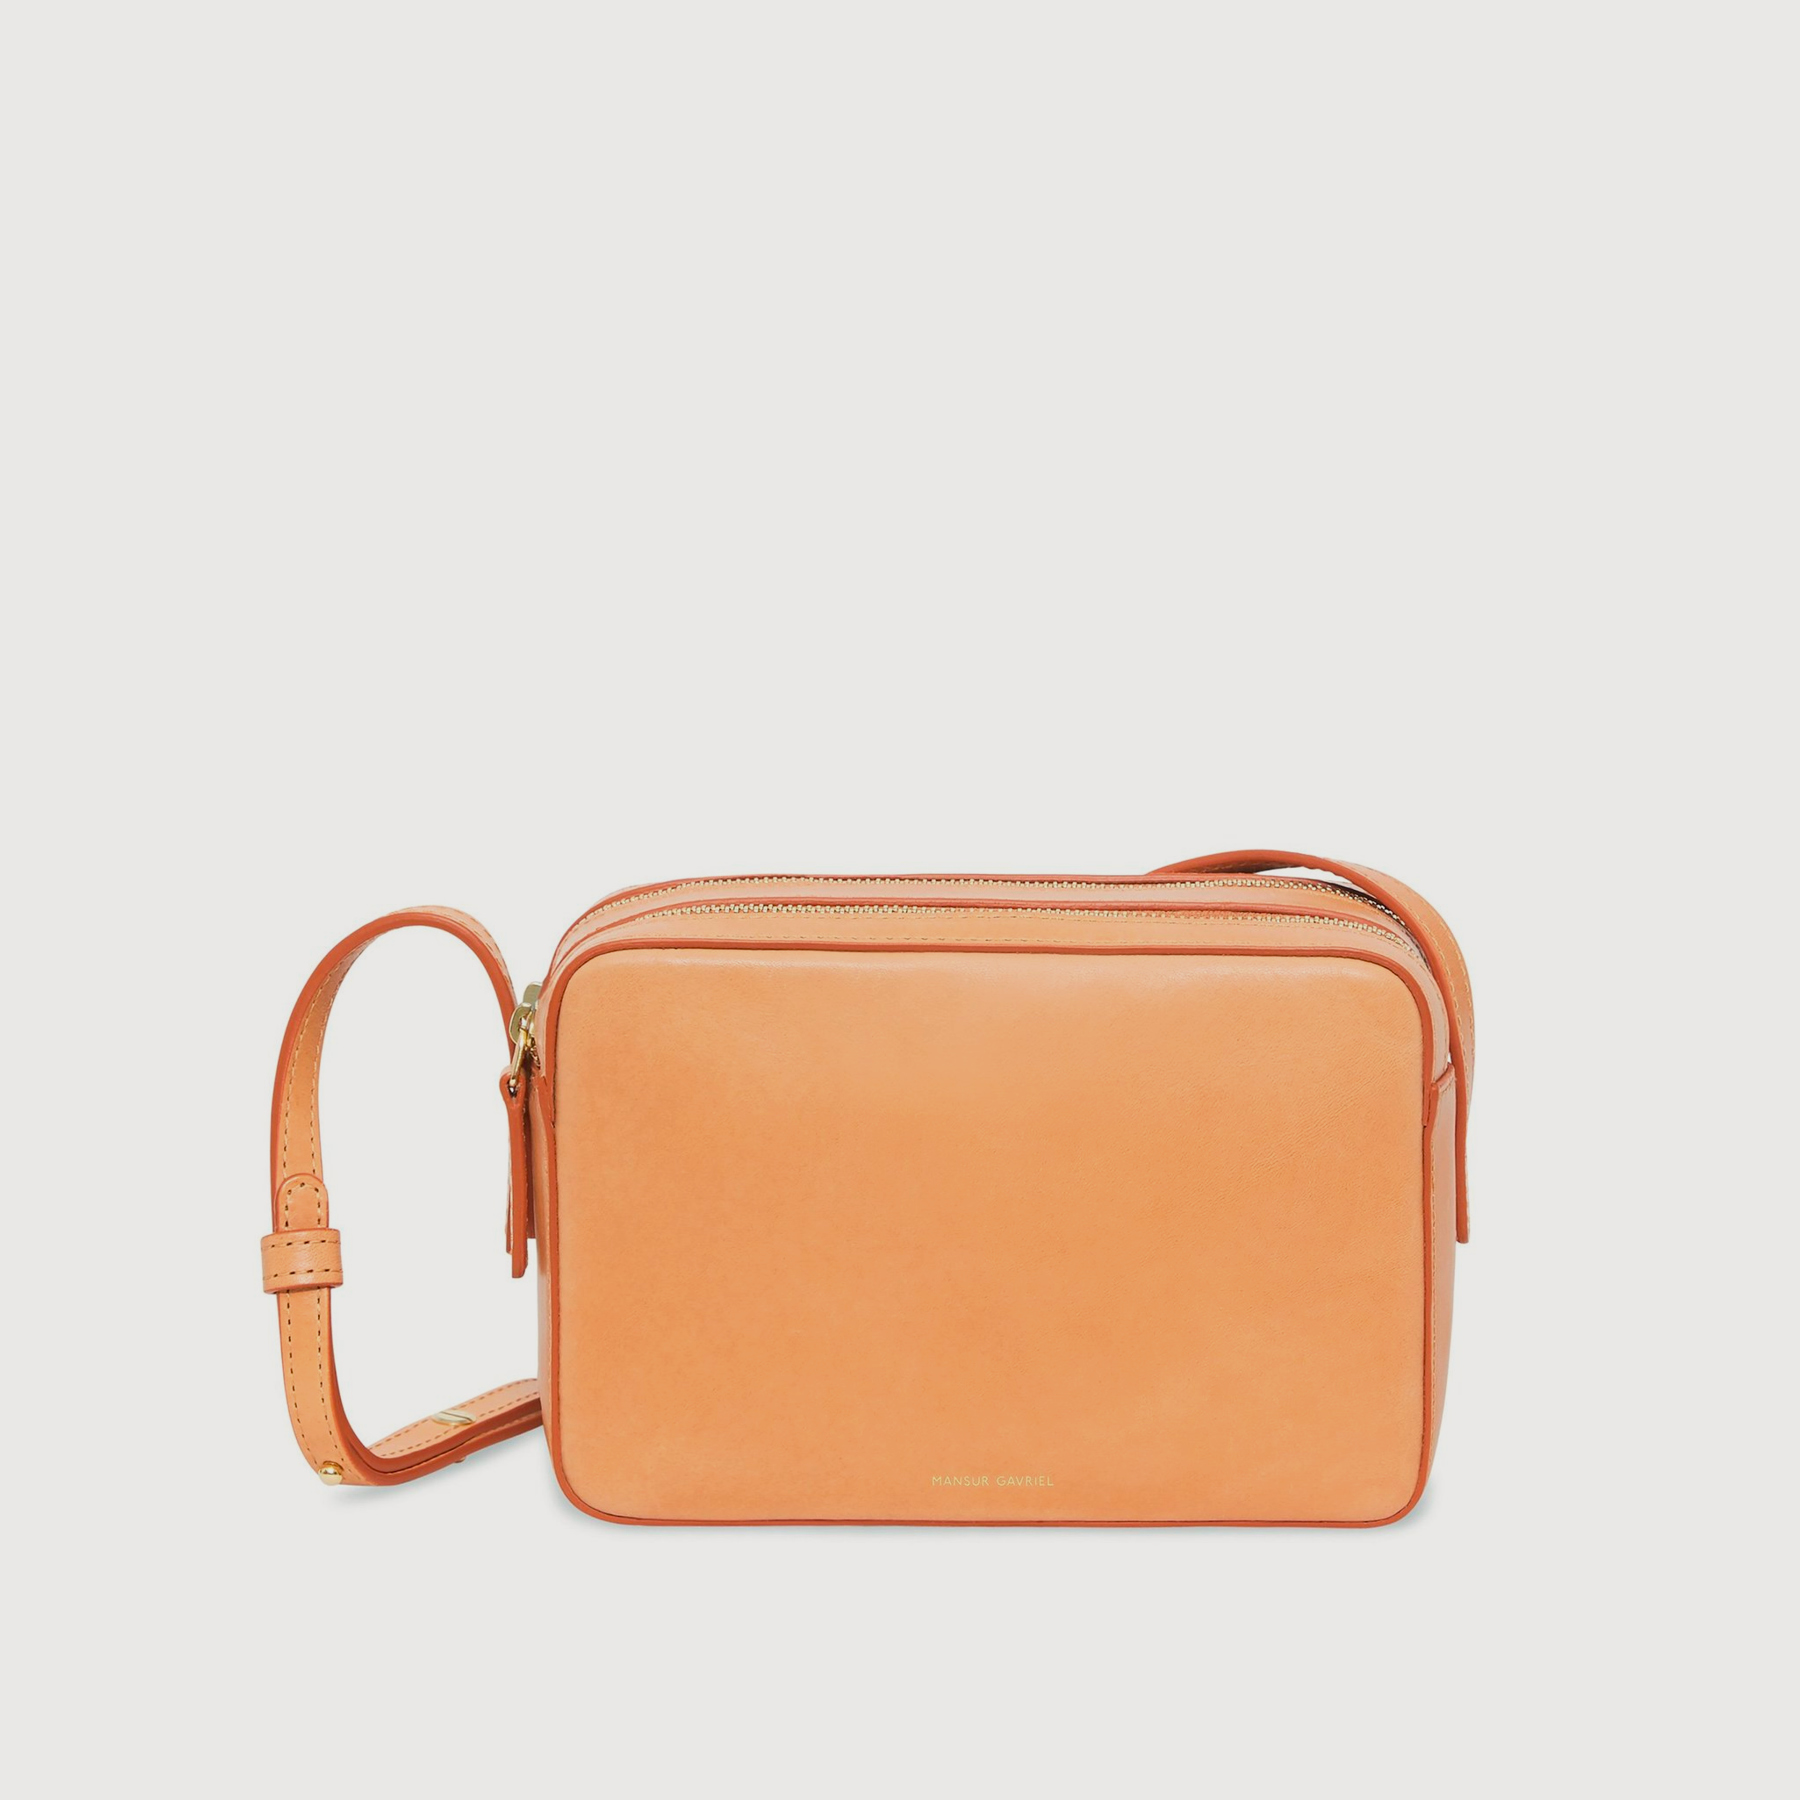 All Sorts Of - Mansur Gavriel Bag